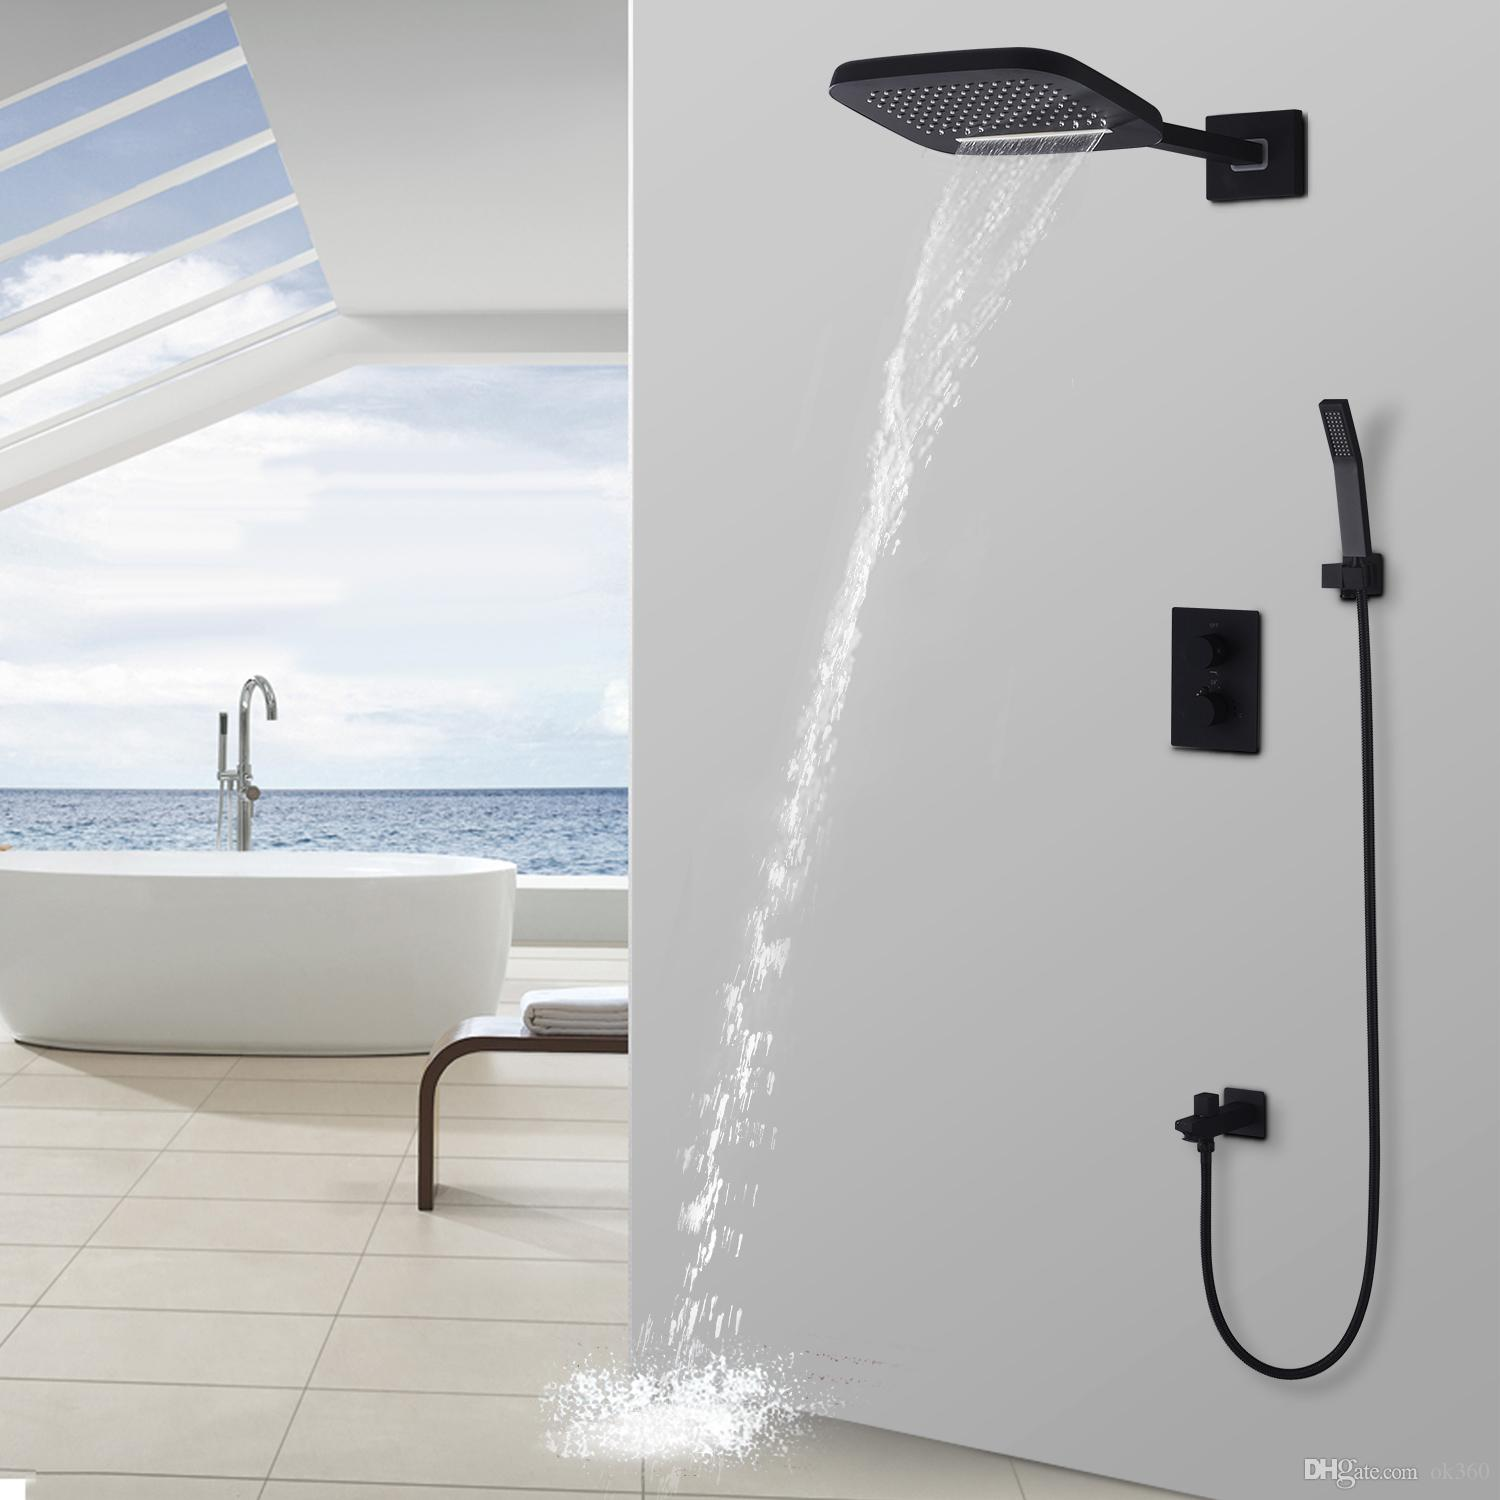 Bathtub Rainfall Shower Head Wall Mount Panel Mixer Wall Mounted Message Shower Set With Hand Shower Bathroom Shower Set Bathroom Fixtures